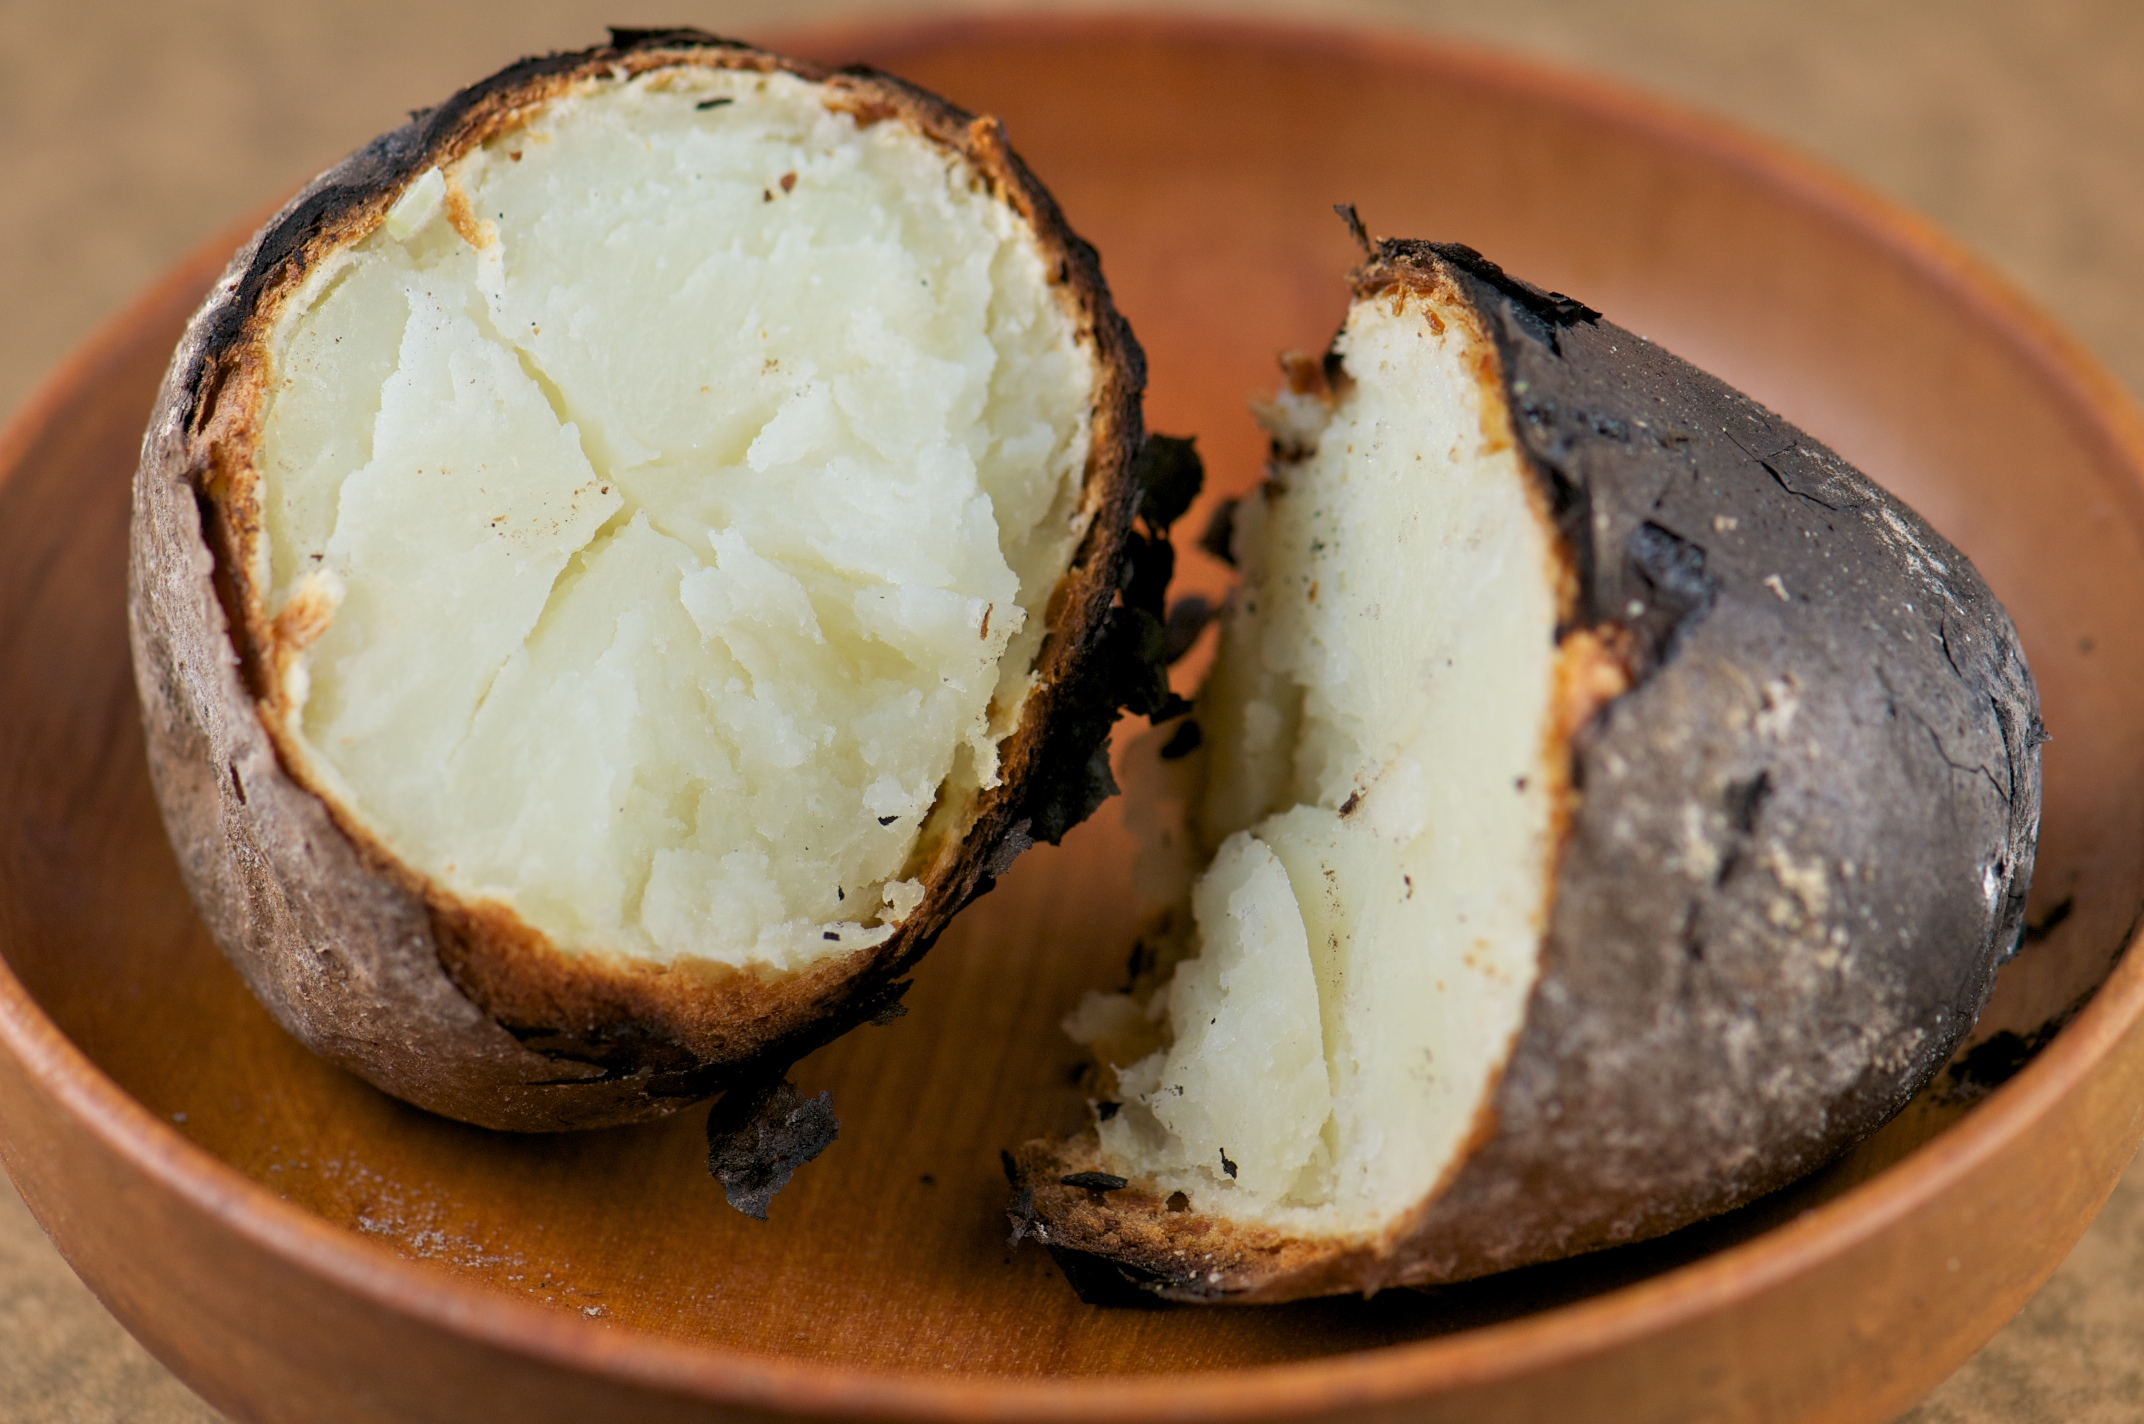 How to bake potatoes in foil